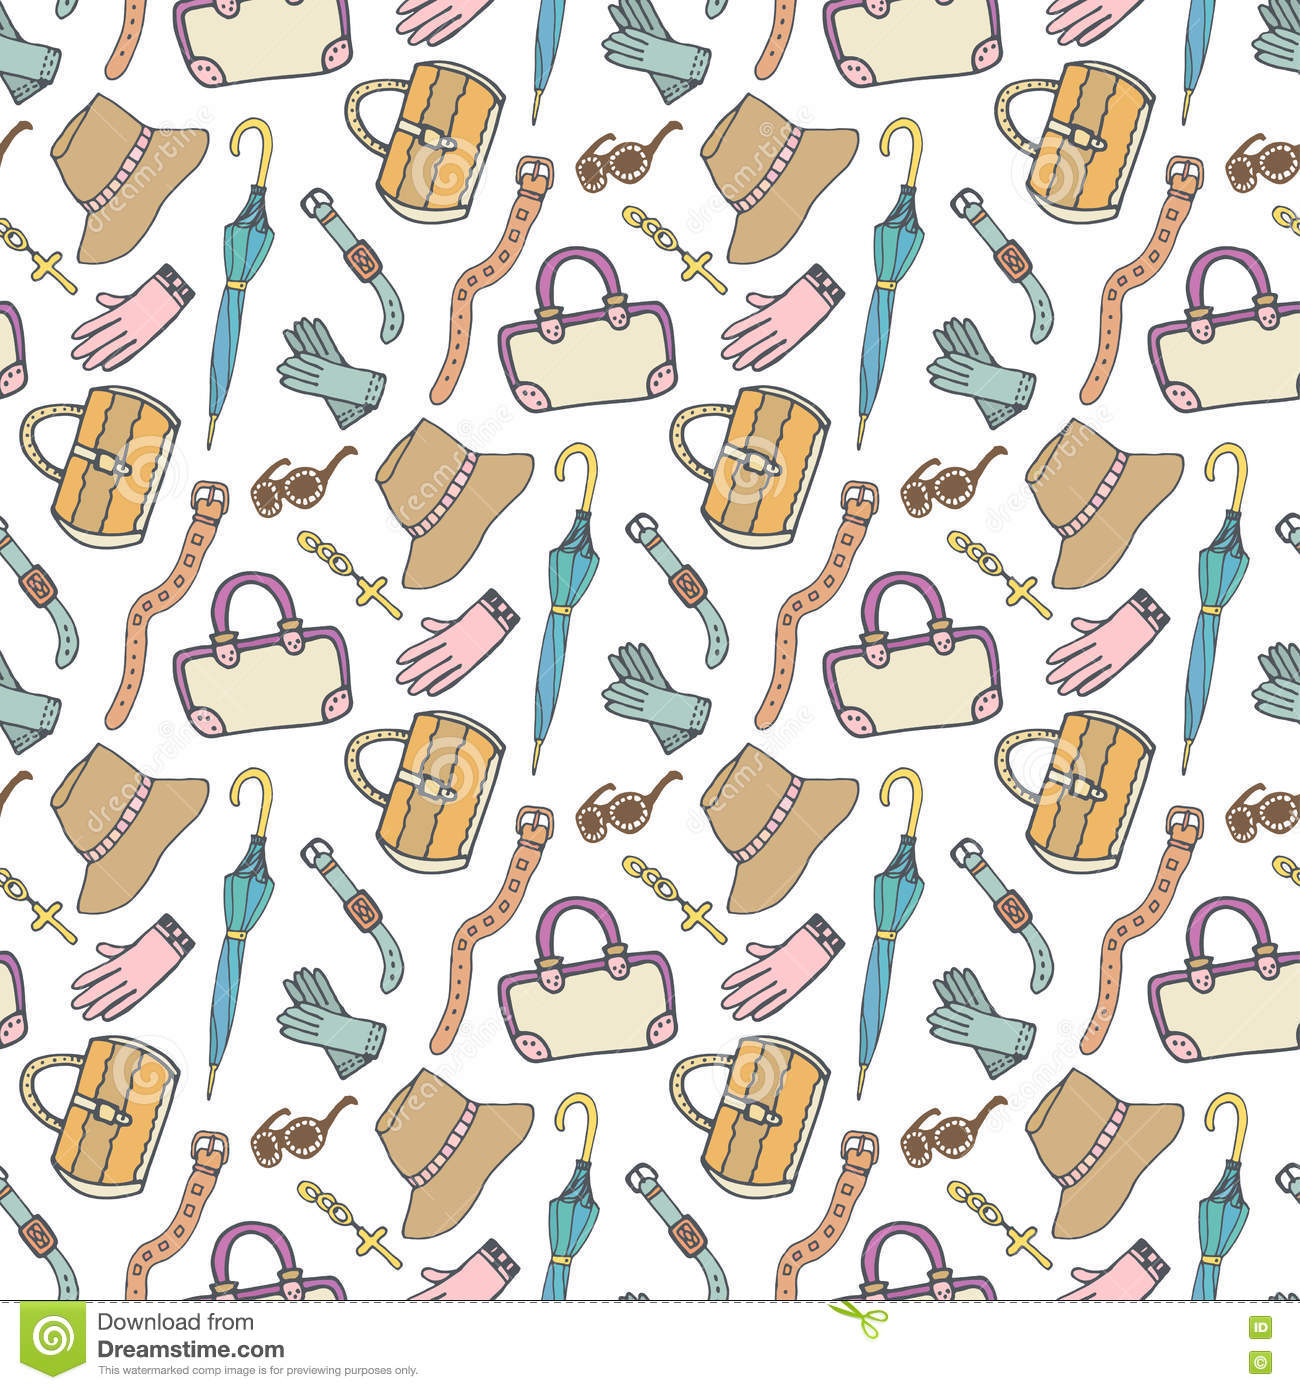 Doodle Fashion Pattern With Accessories And Handbags ...